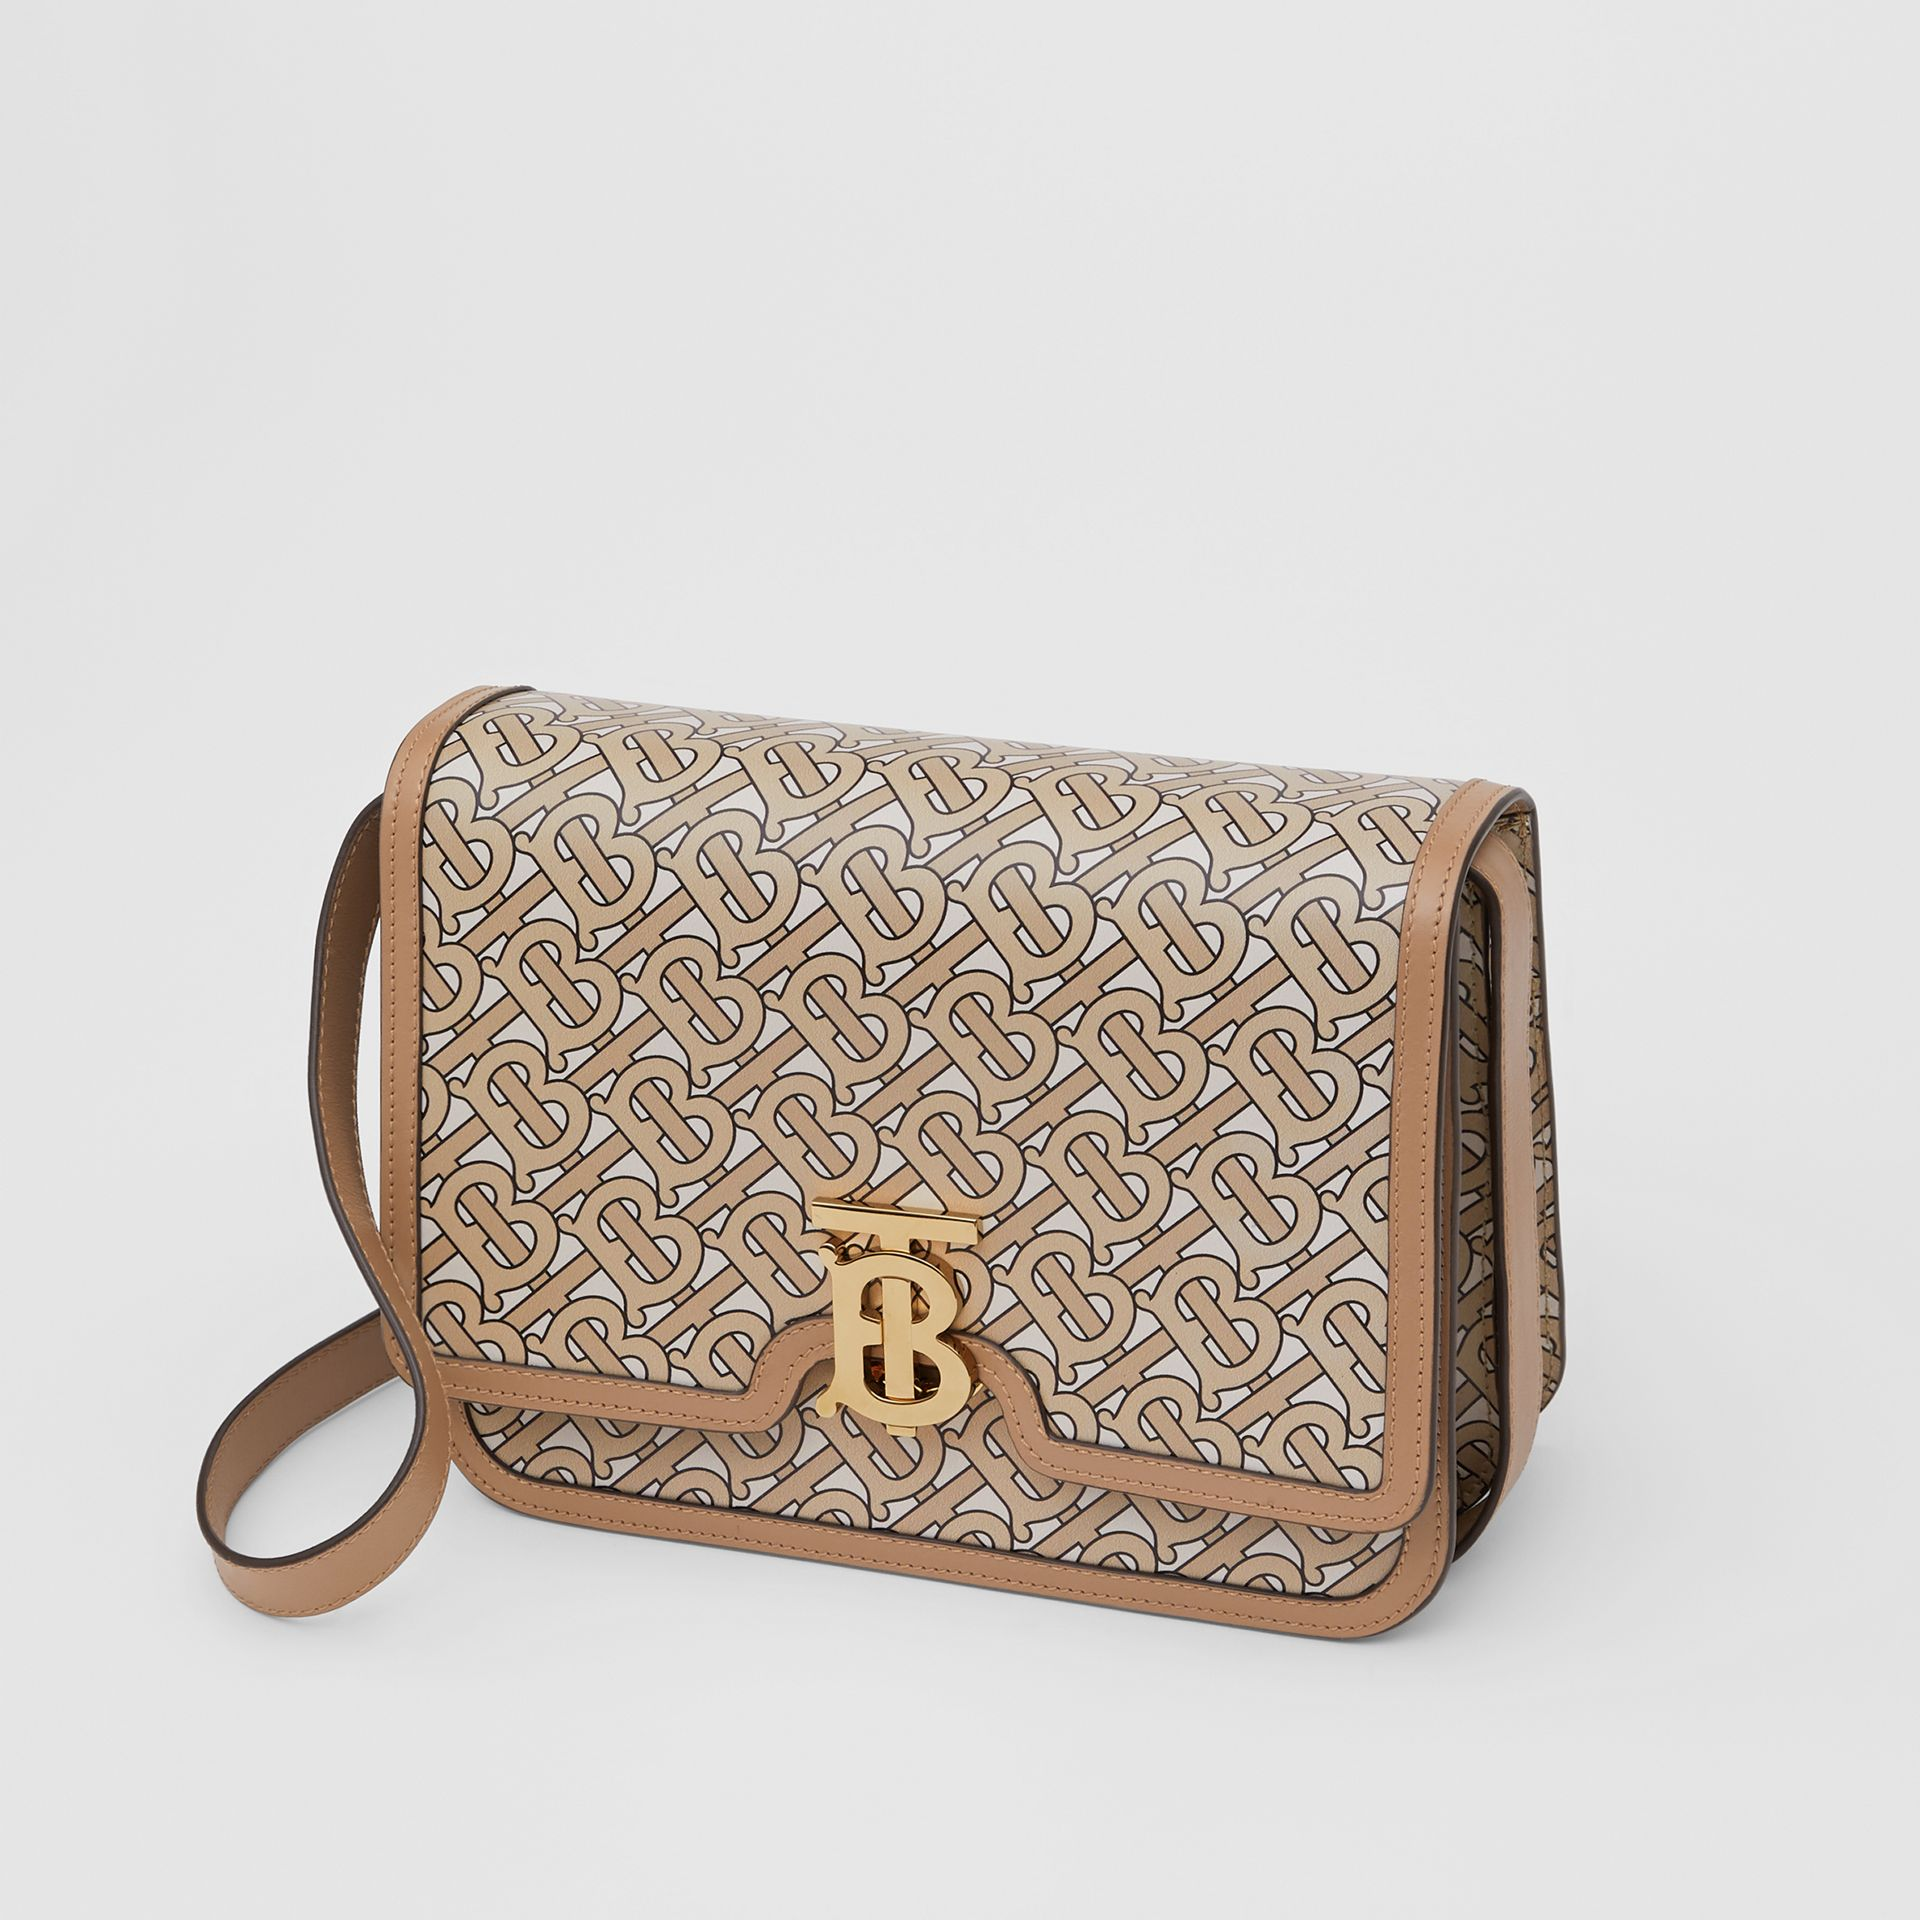 Medium Monogram Print Leather TB Bag in Beige - Women | Burberry United States - gallery image 3